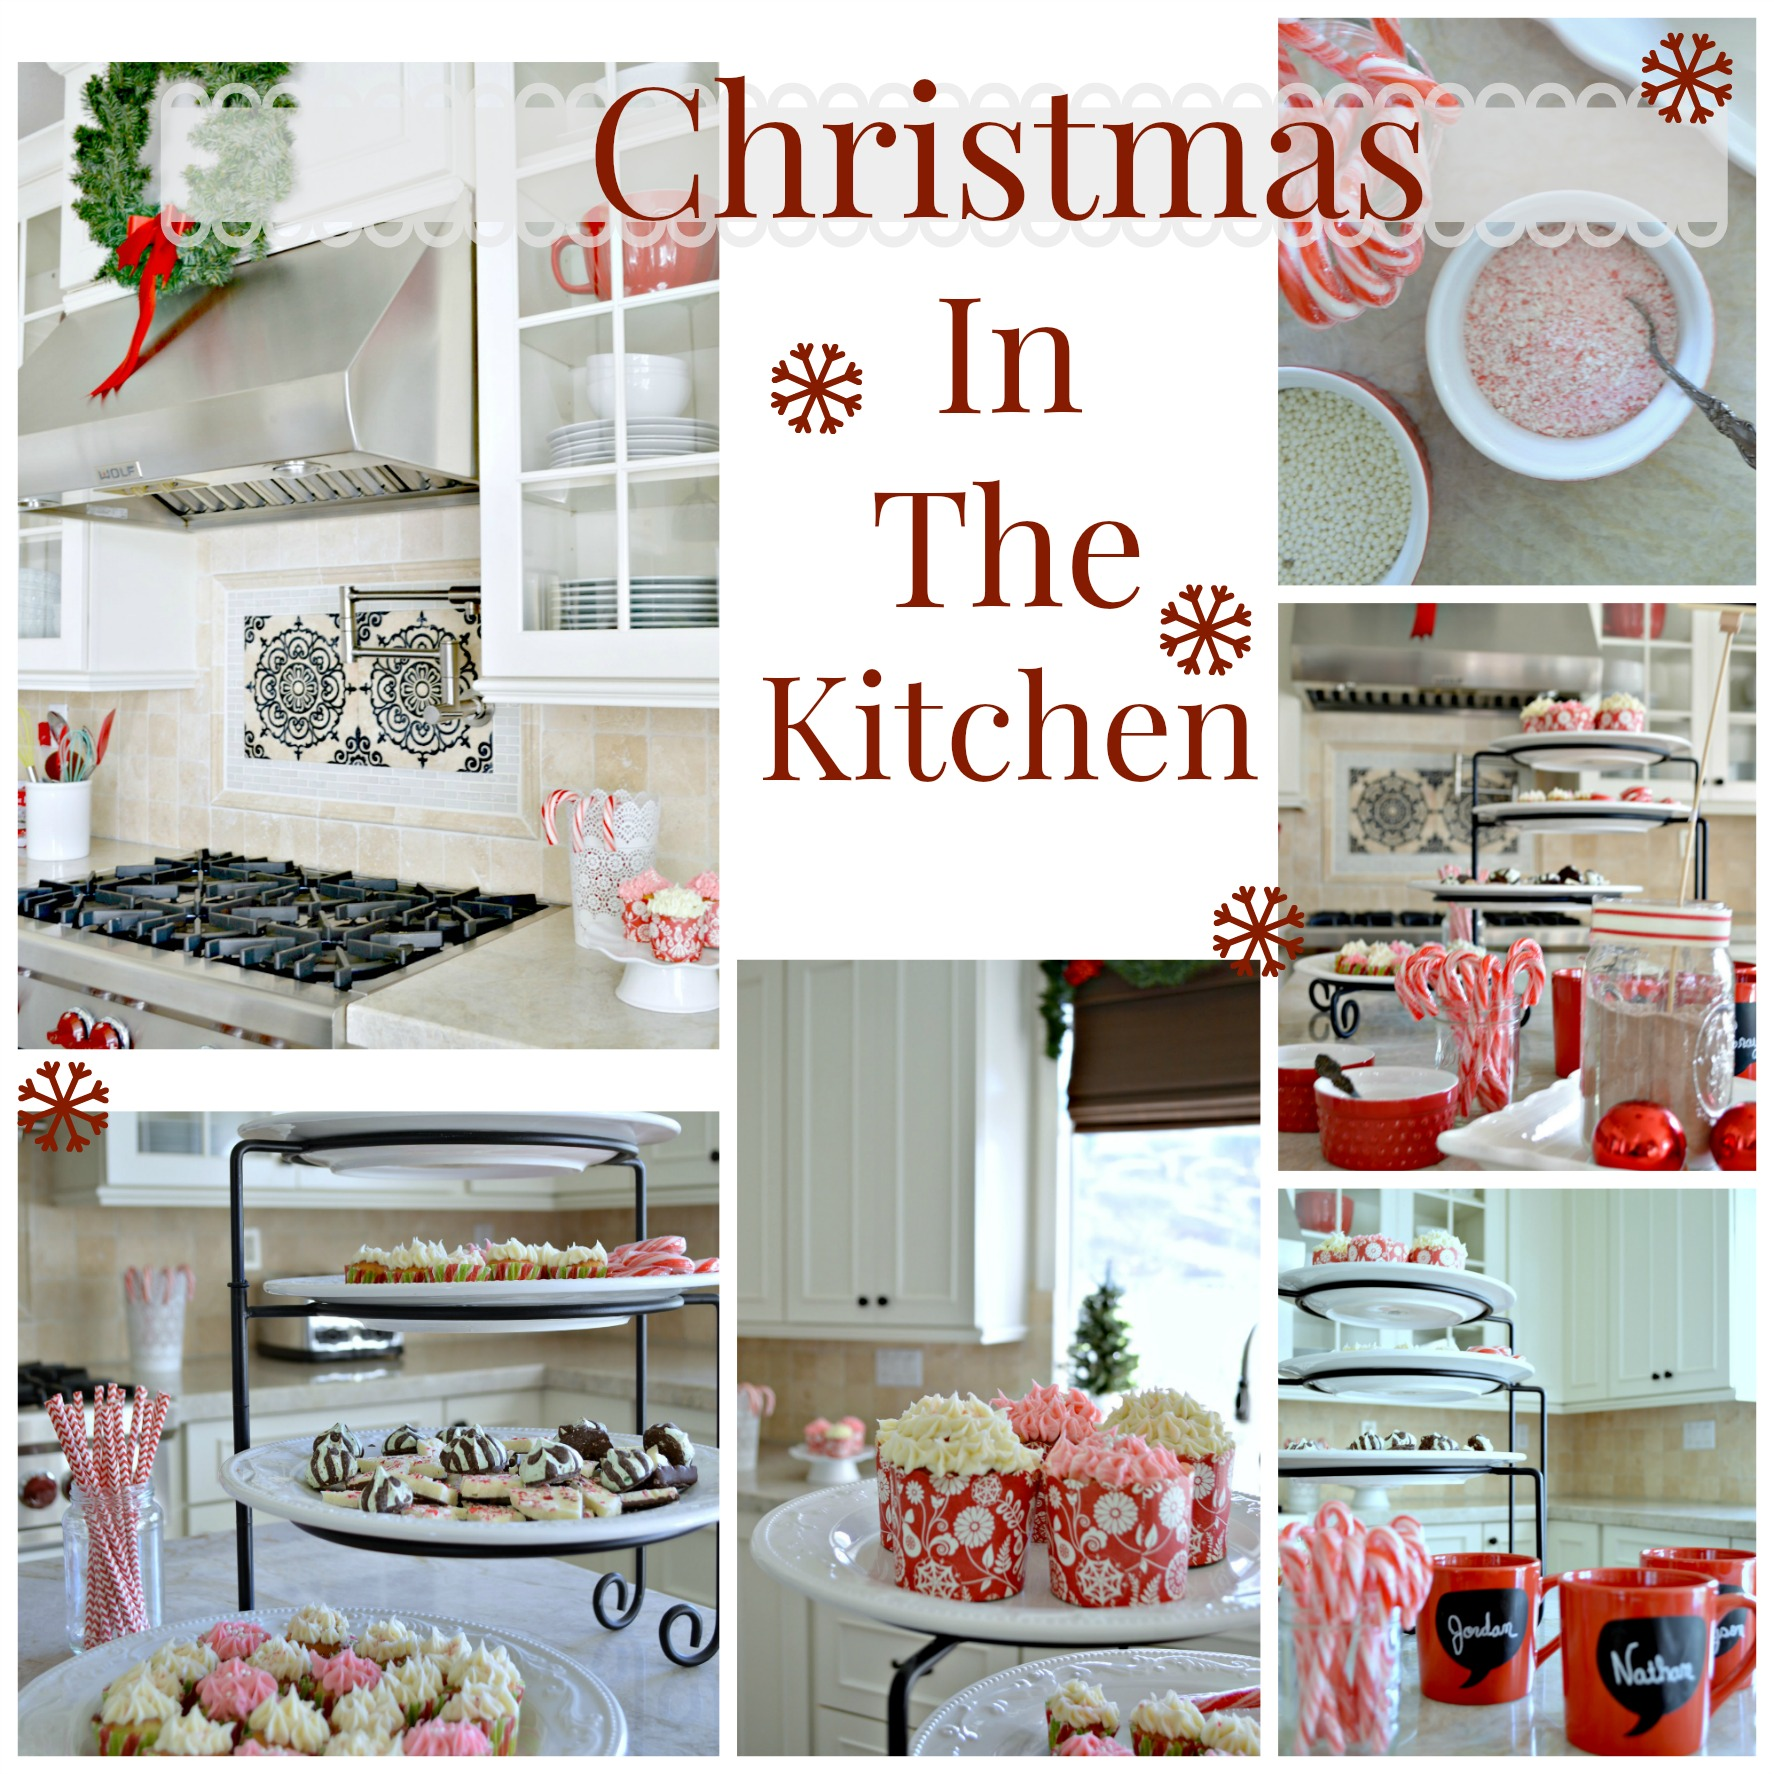 Fun Kitchen Decorating Ideas